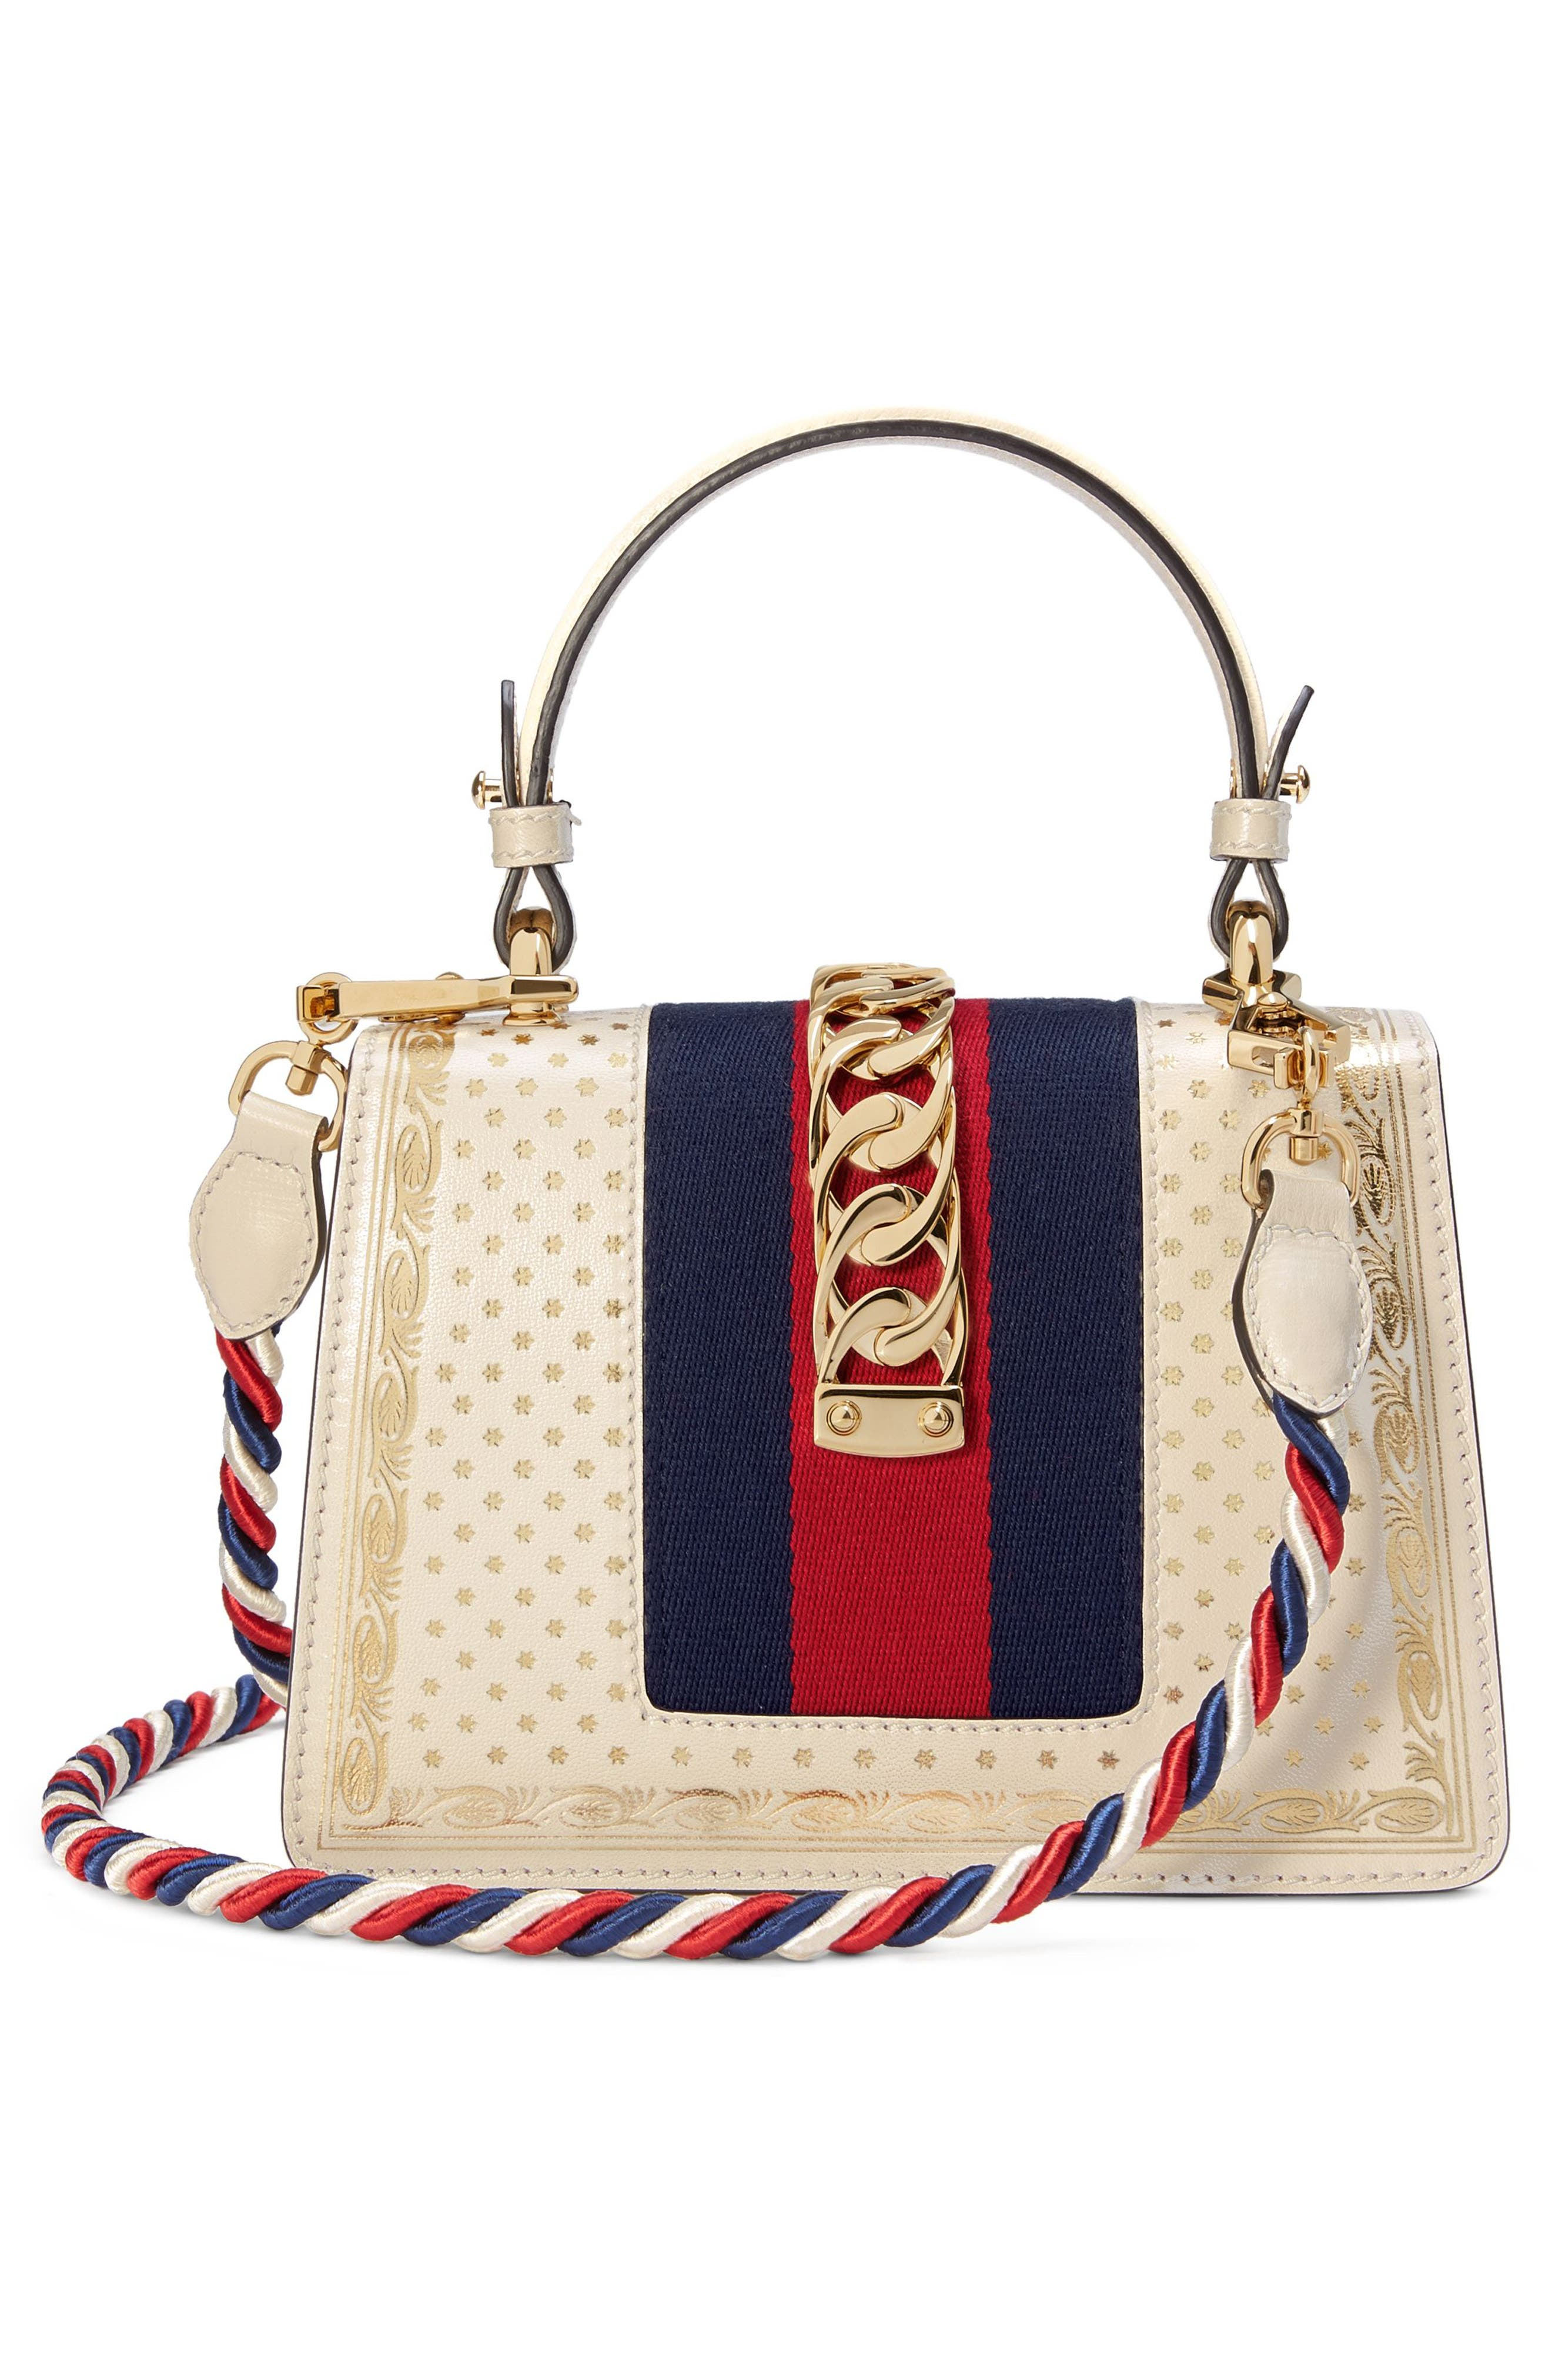 Mini Sylvie Moon & Stars Leather Shoulder Bag,                             Alternate thumbnail 2, color,                             Mystic White/ Oro/ Blue Red